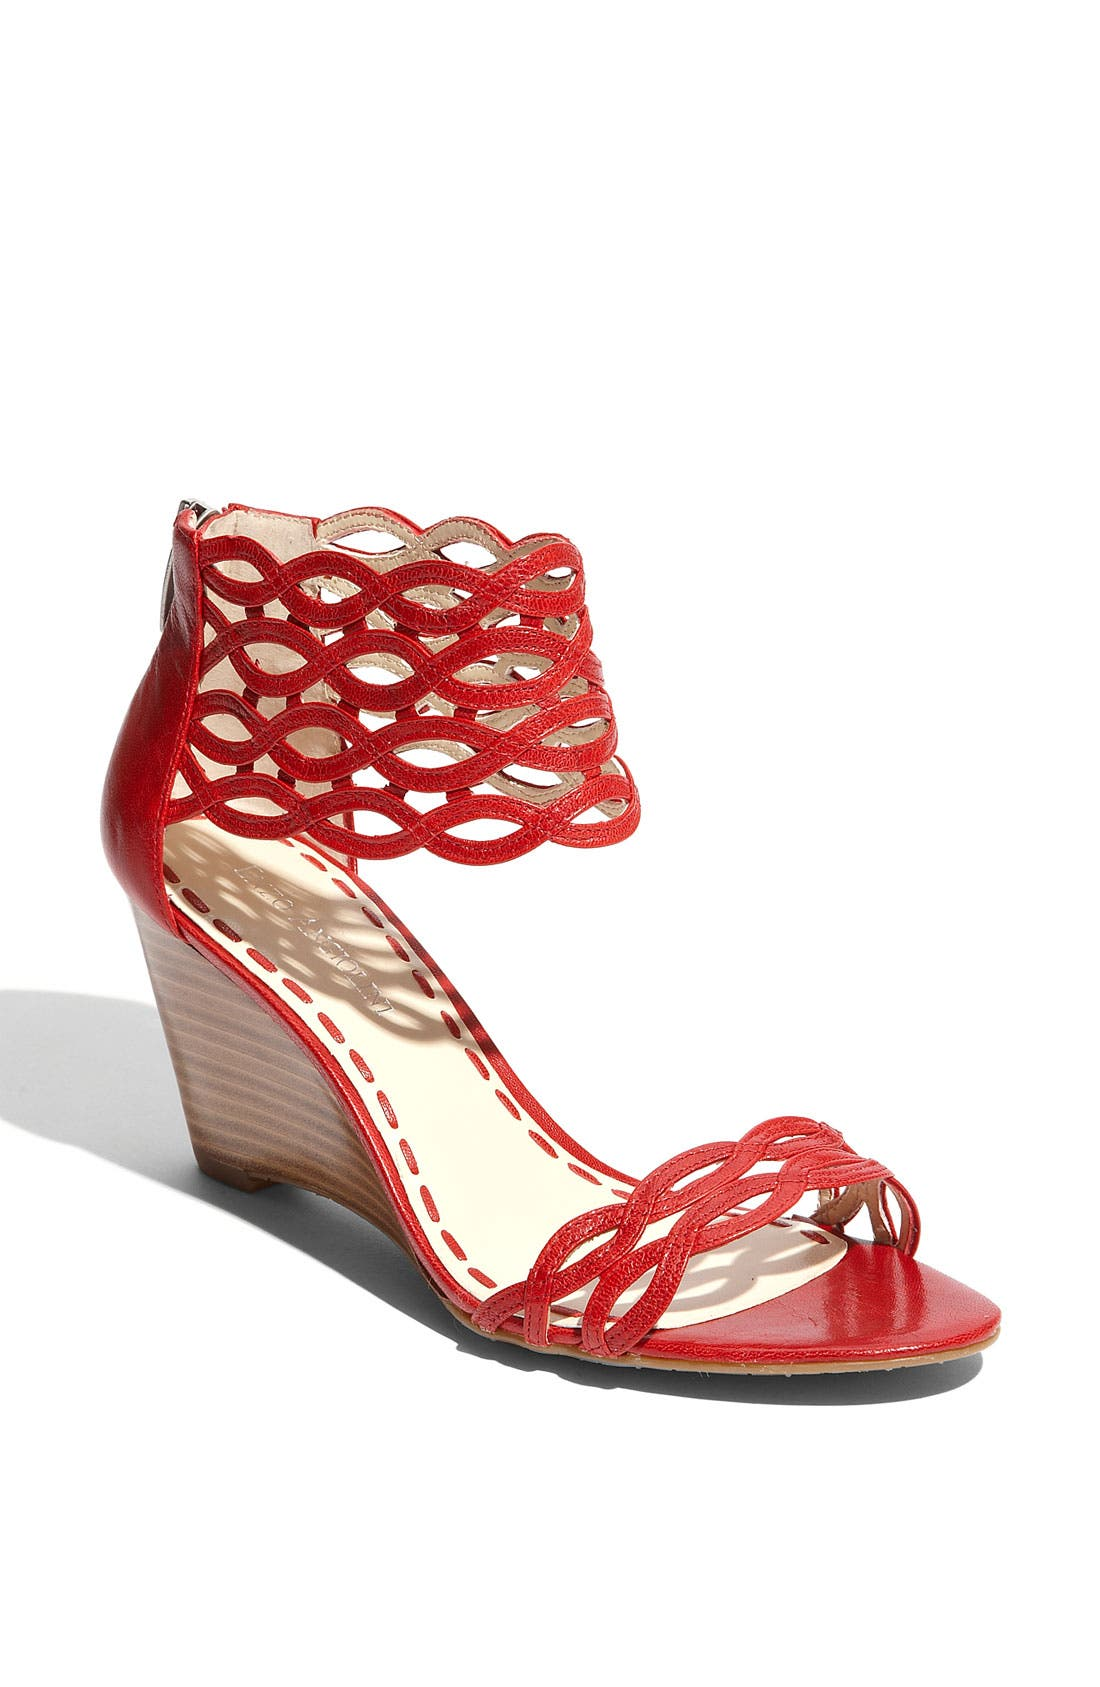 Alternate Image 1 Selected - Enzo Angiolini 'Harp' Wedge